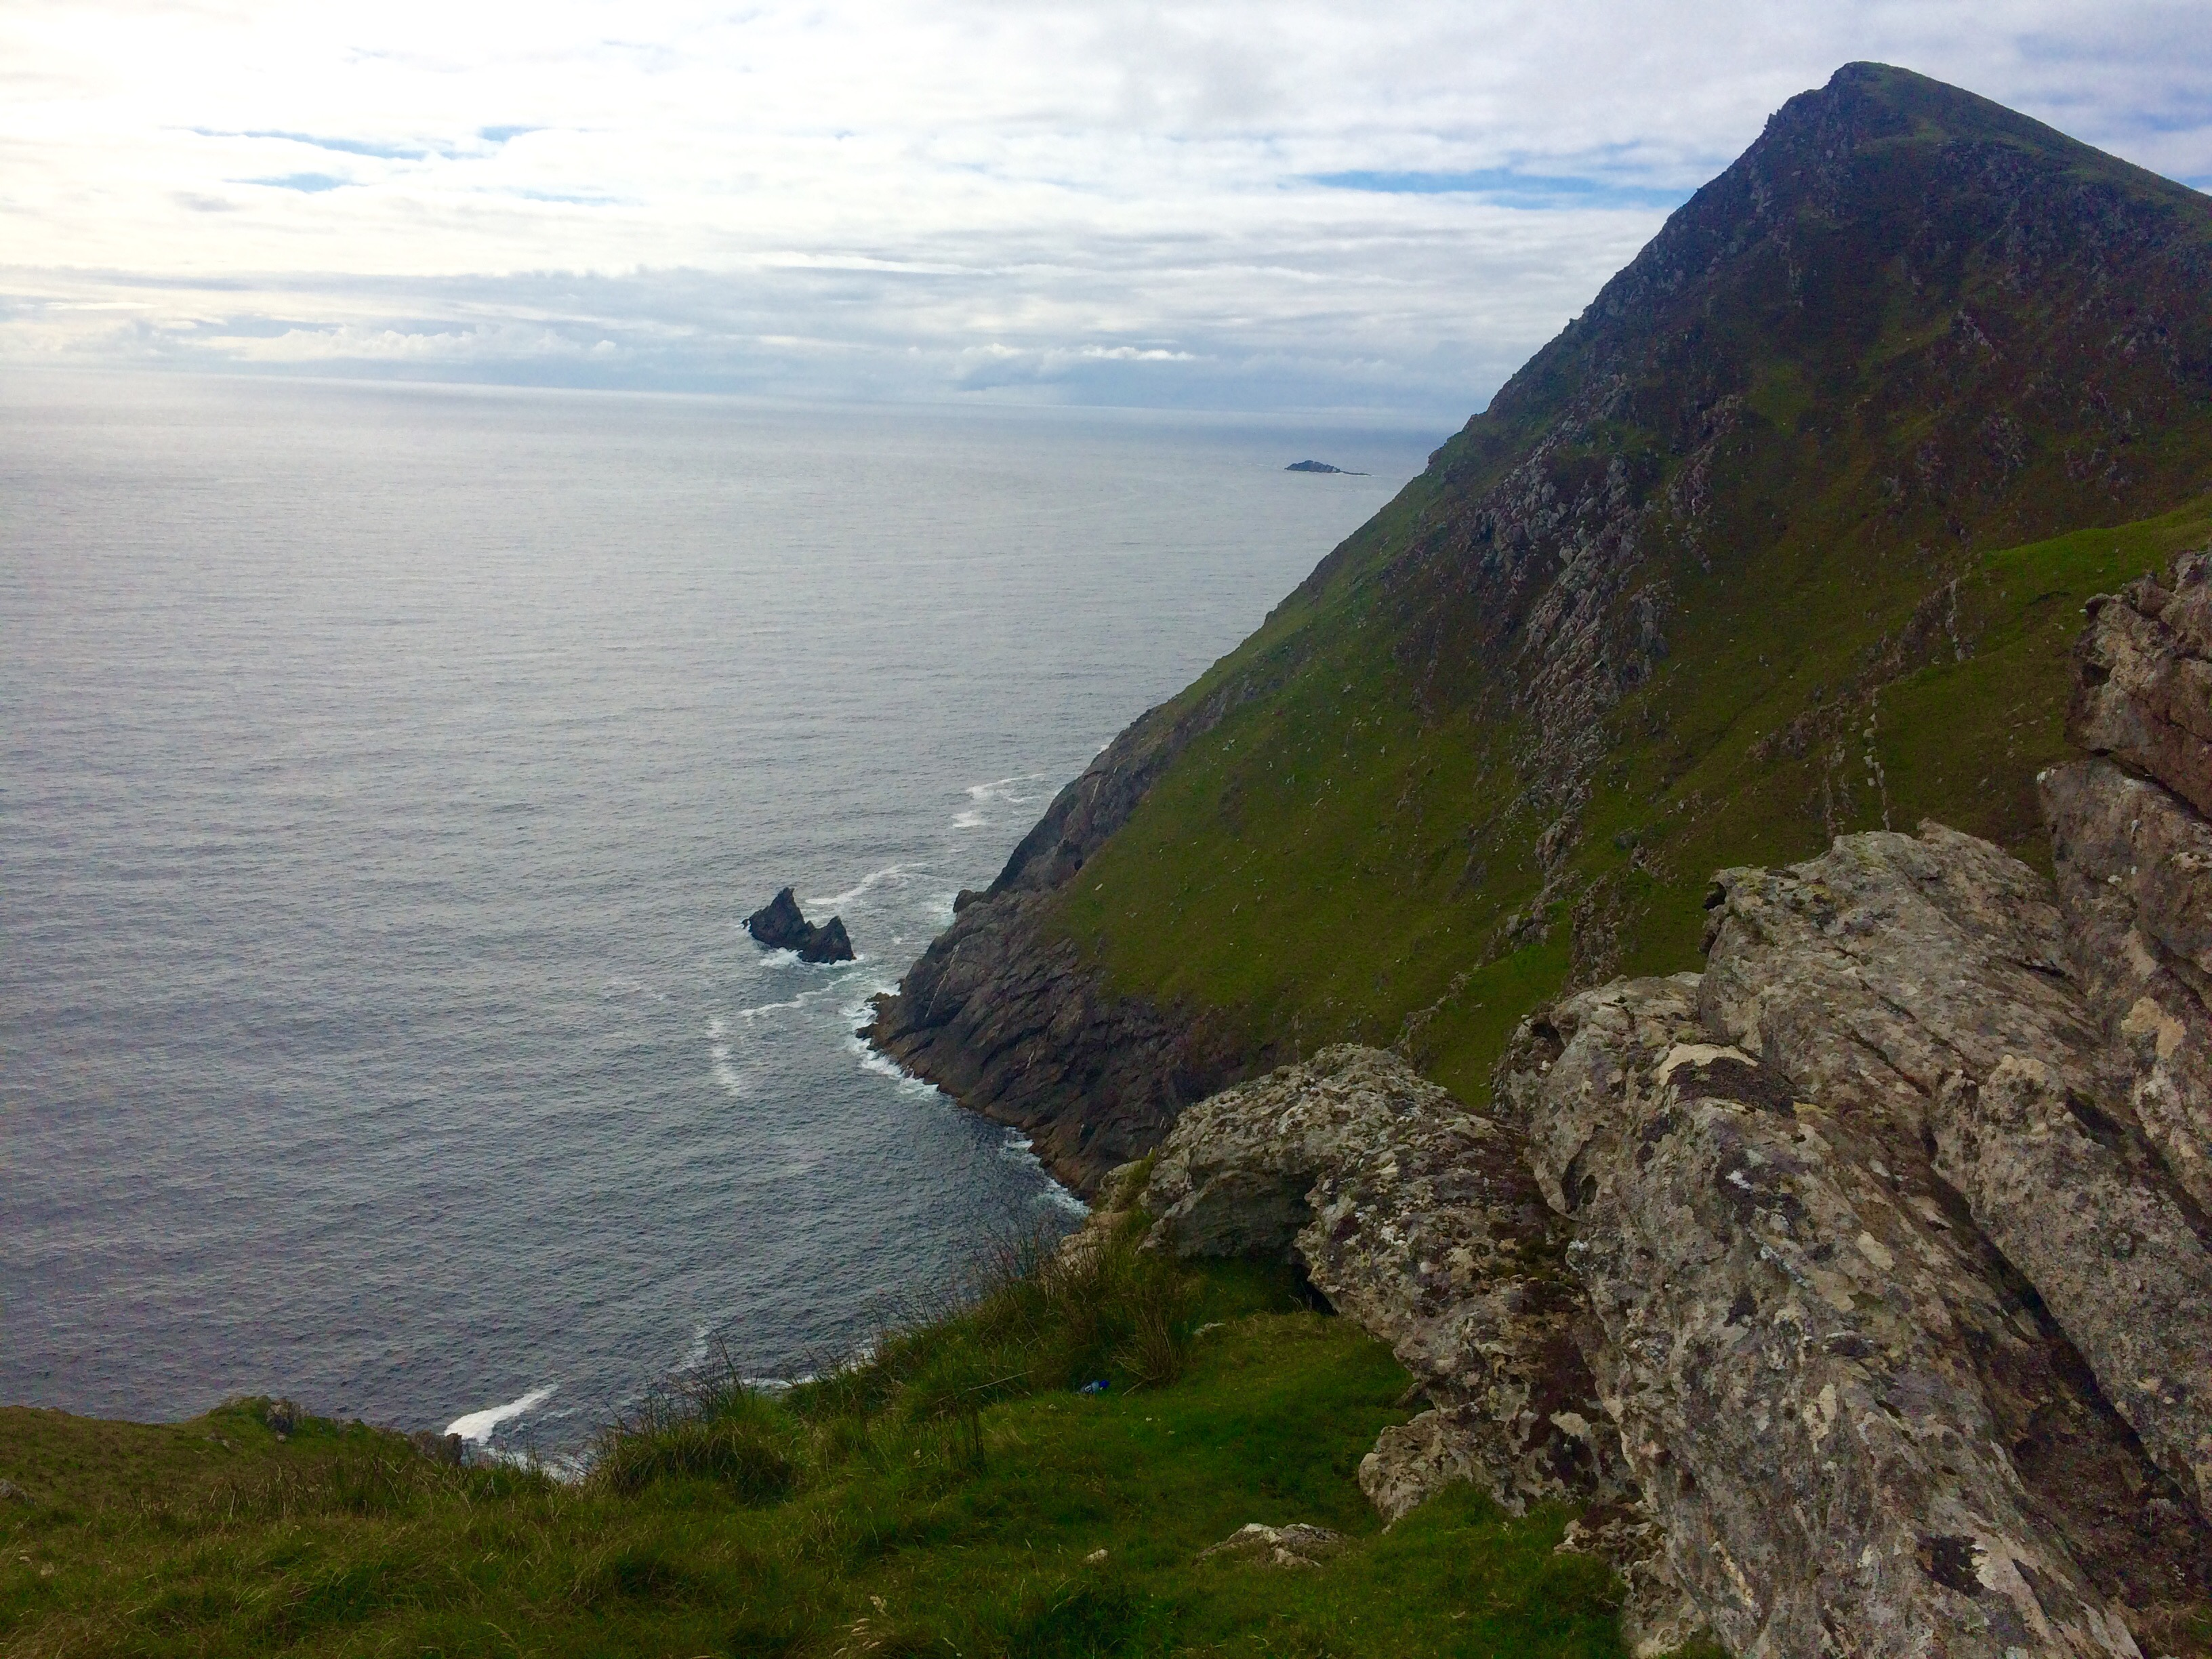 Next stop - New York! The view west out on to the Atlantic from Achill Head